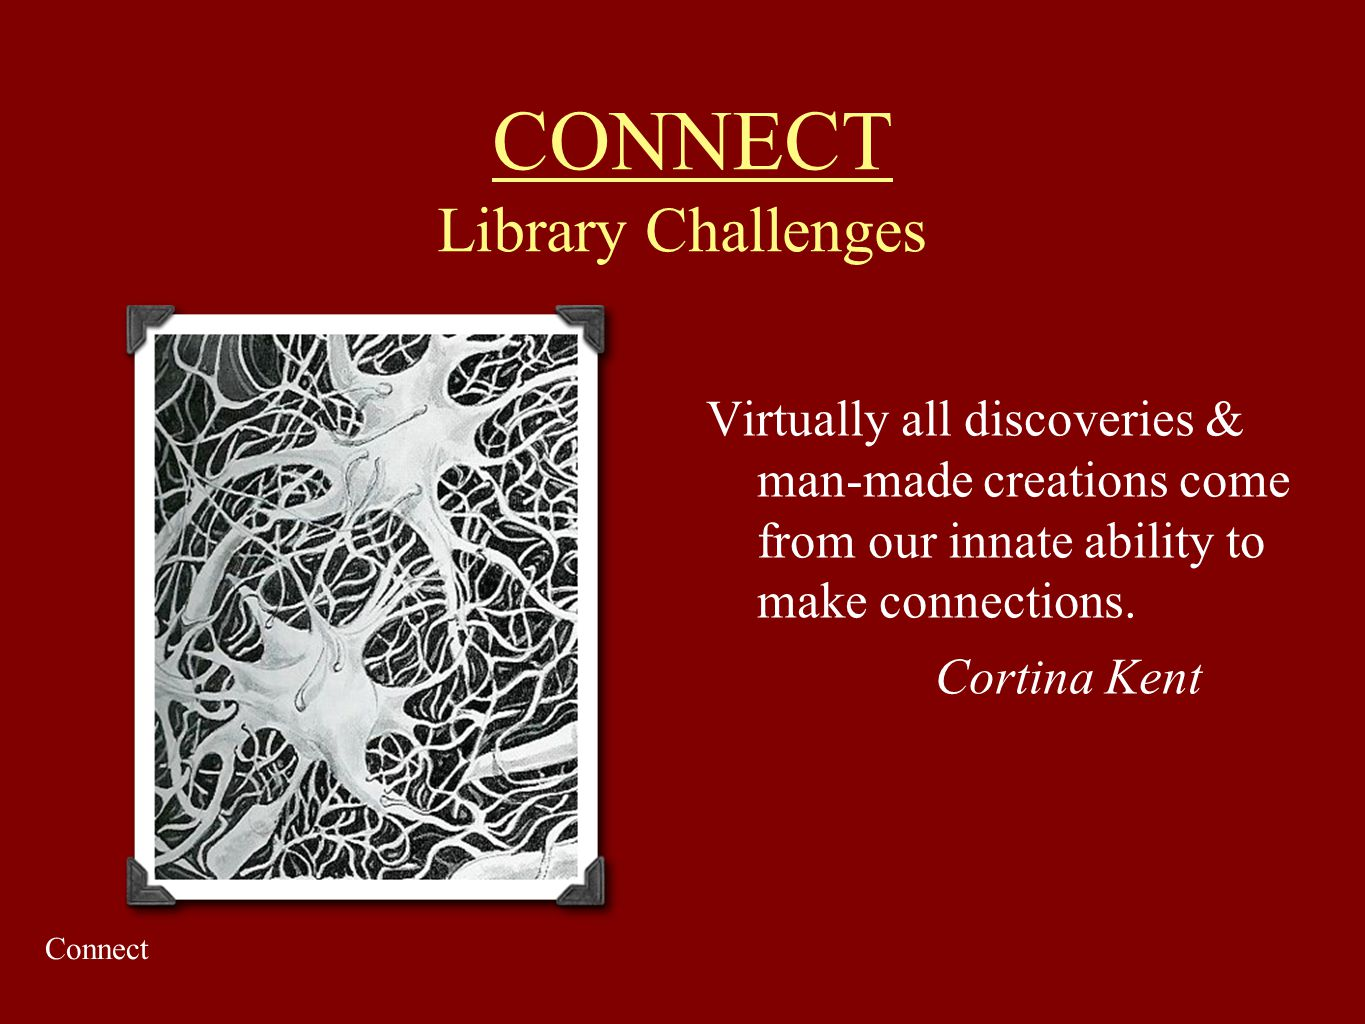 CONNECT Library Challenges Virtually all discoveries & man-made creations come from our innate ability to make connections. Cortina Kent Connect